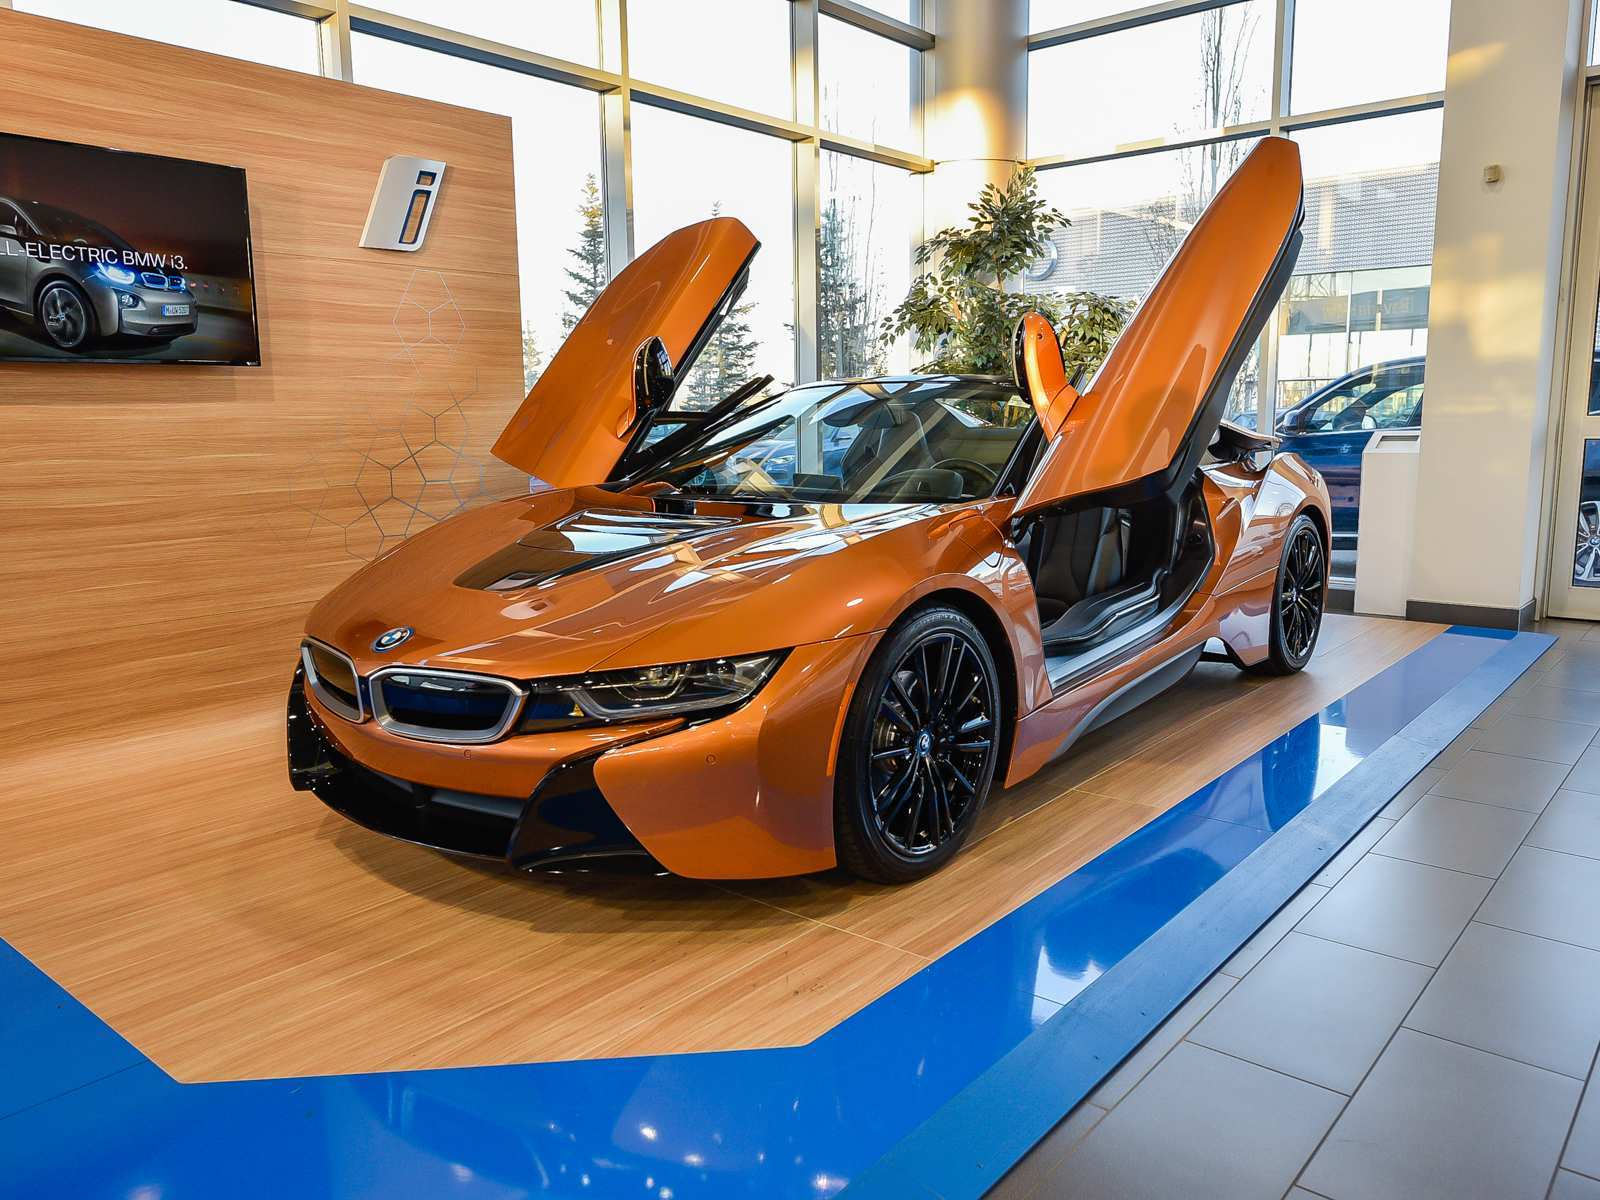 78 The Best 2019 Bmw I8 Roadster Overview